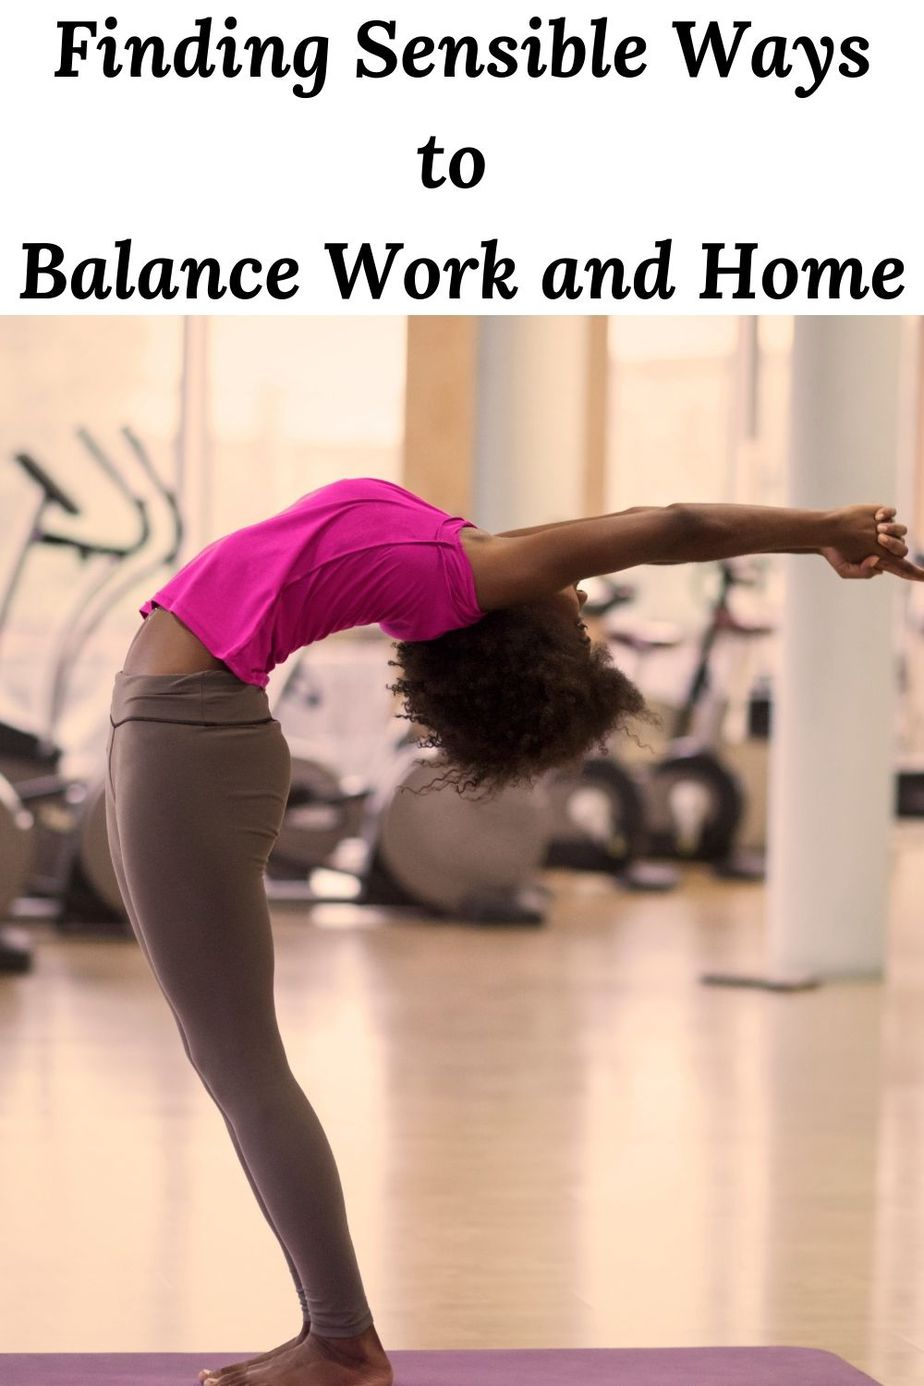 Finding Sensible Ways to Balance Work and Home